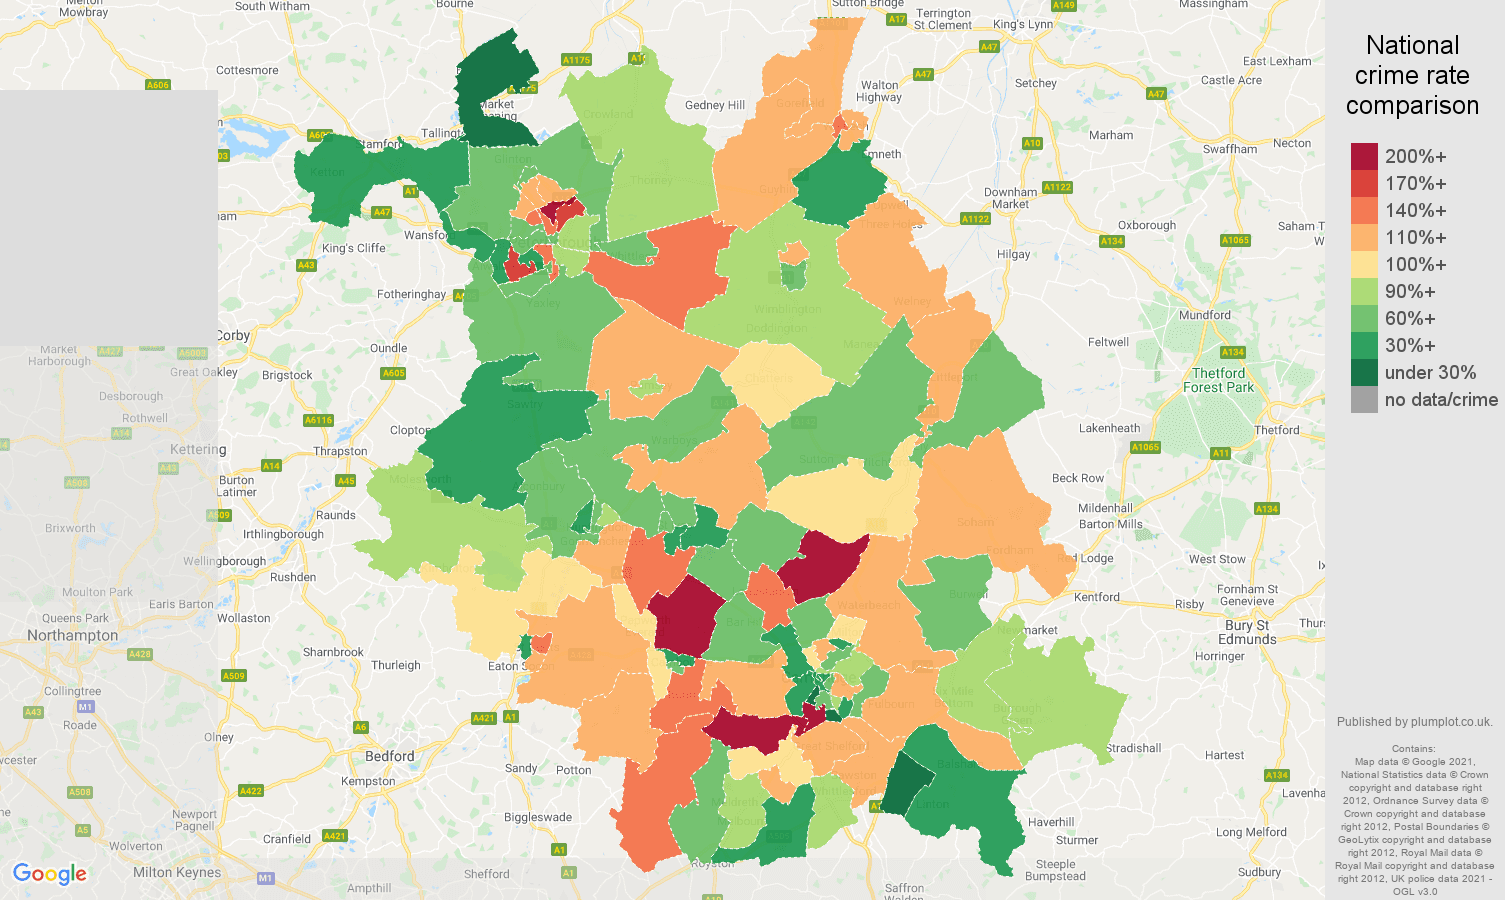 Cambridgeshire burglary crime rate comparison map